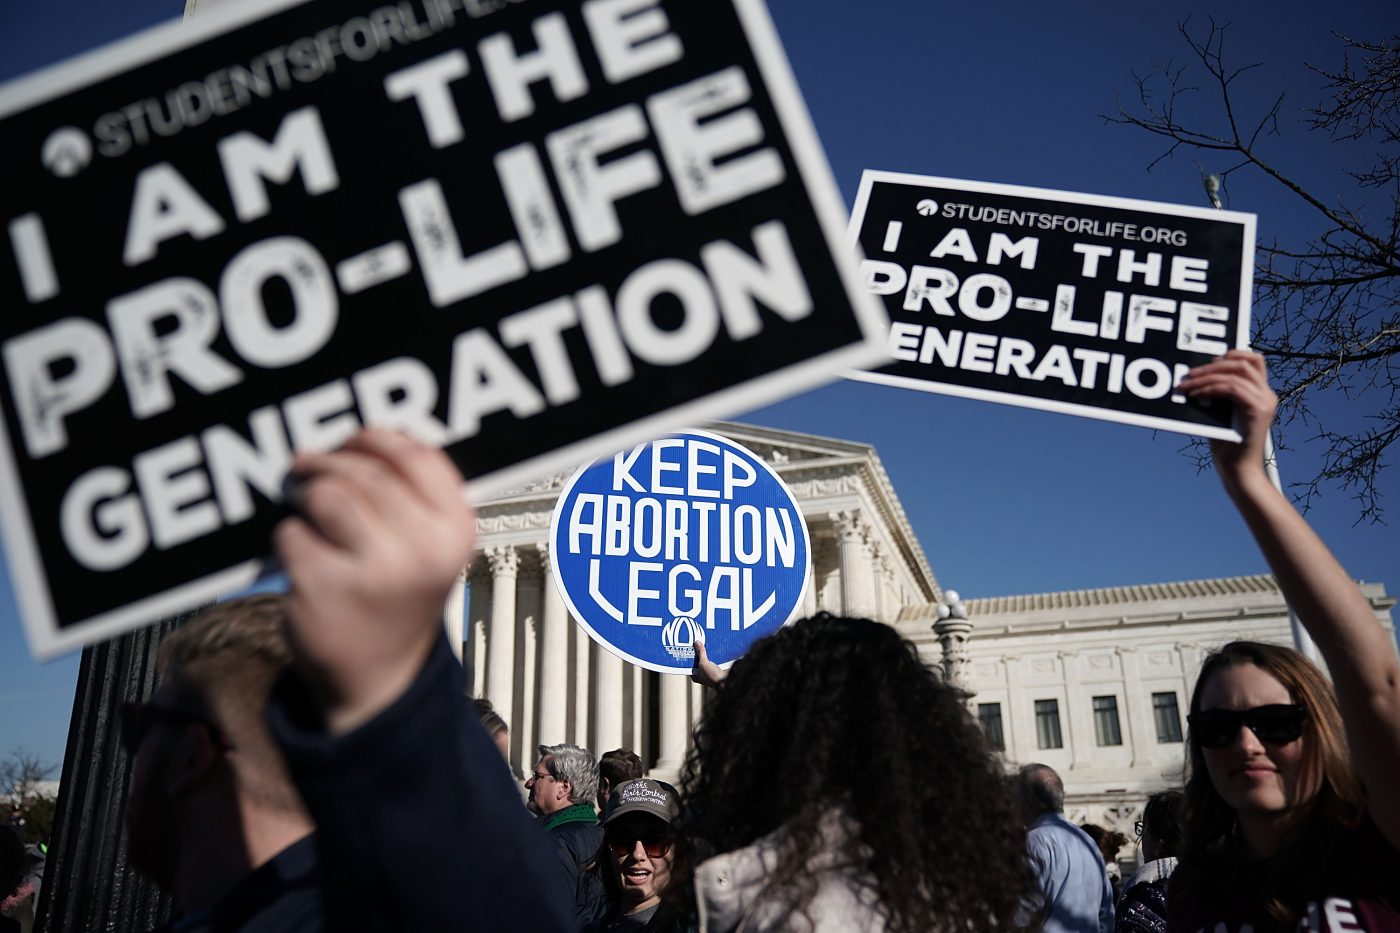 A group of scientists is urging the Supreme Court to uphold a crucial abortion restriction